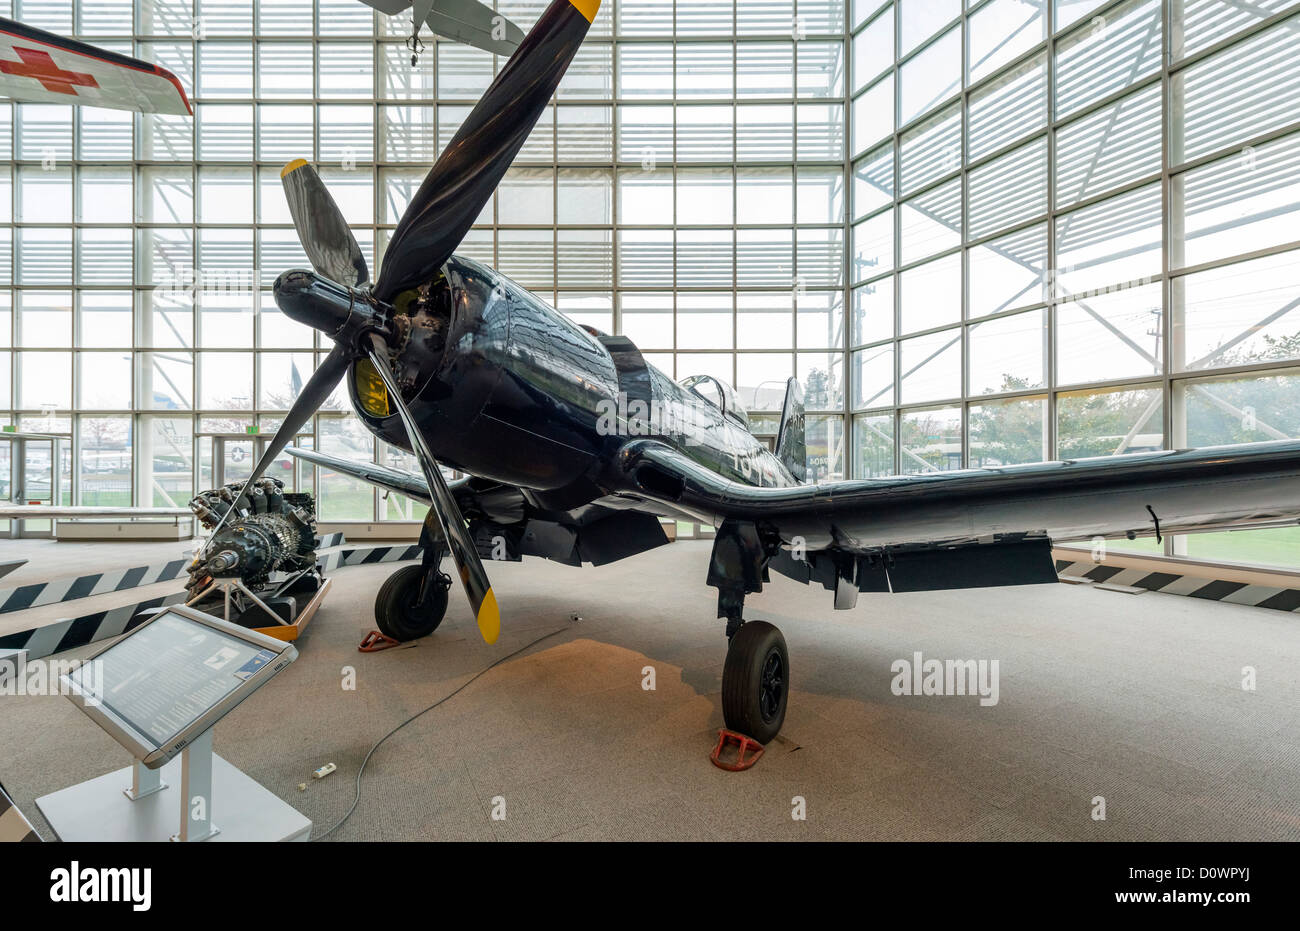 A 1944 Goodyear F2G-1 Corsair fighter aircraft (Super Corsair), The Great Gallery, Museum of Flight, Seattle, Washington, - Stock Image